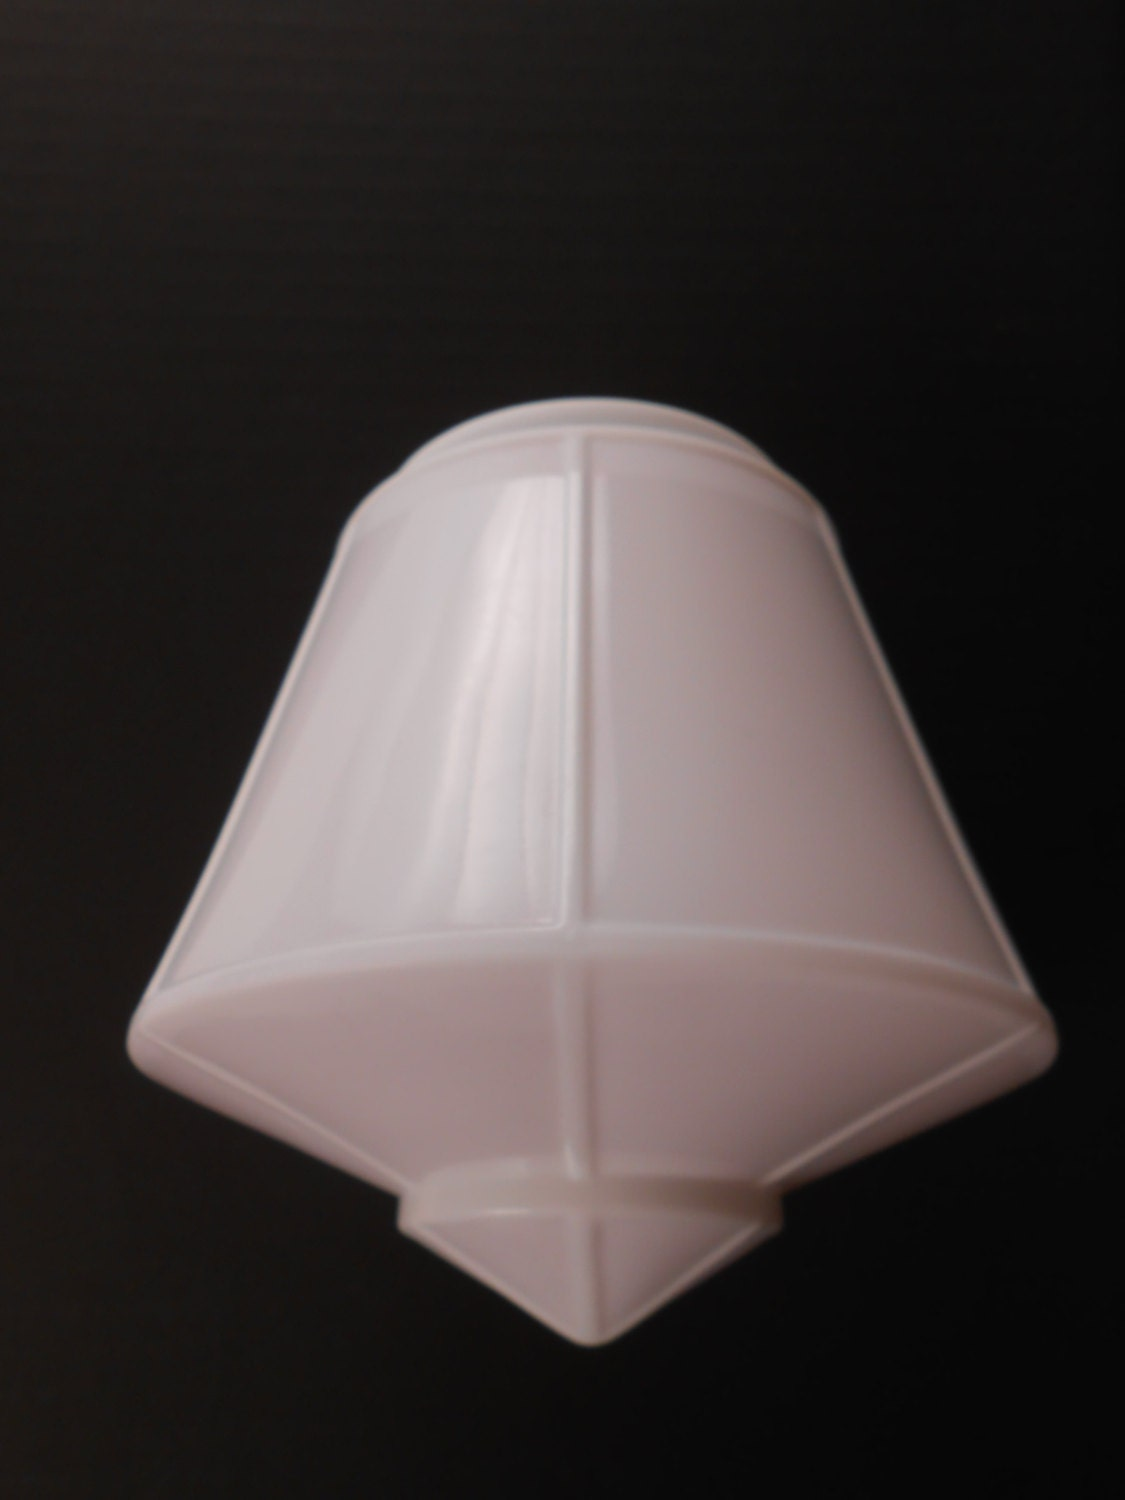 Vintage Art Deco Bell Shaped Ceiling Light Fixture Fitter